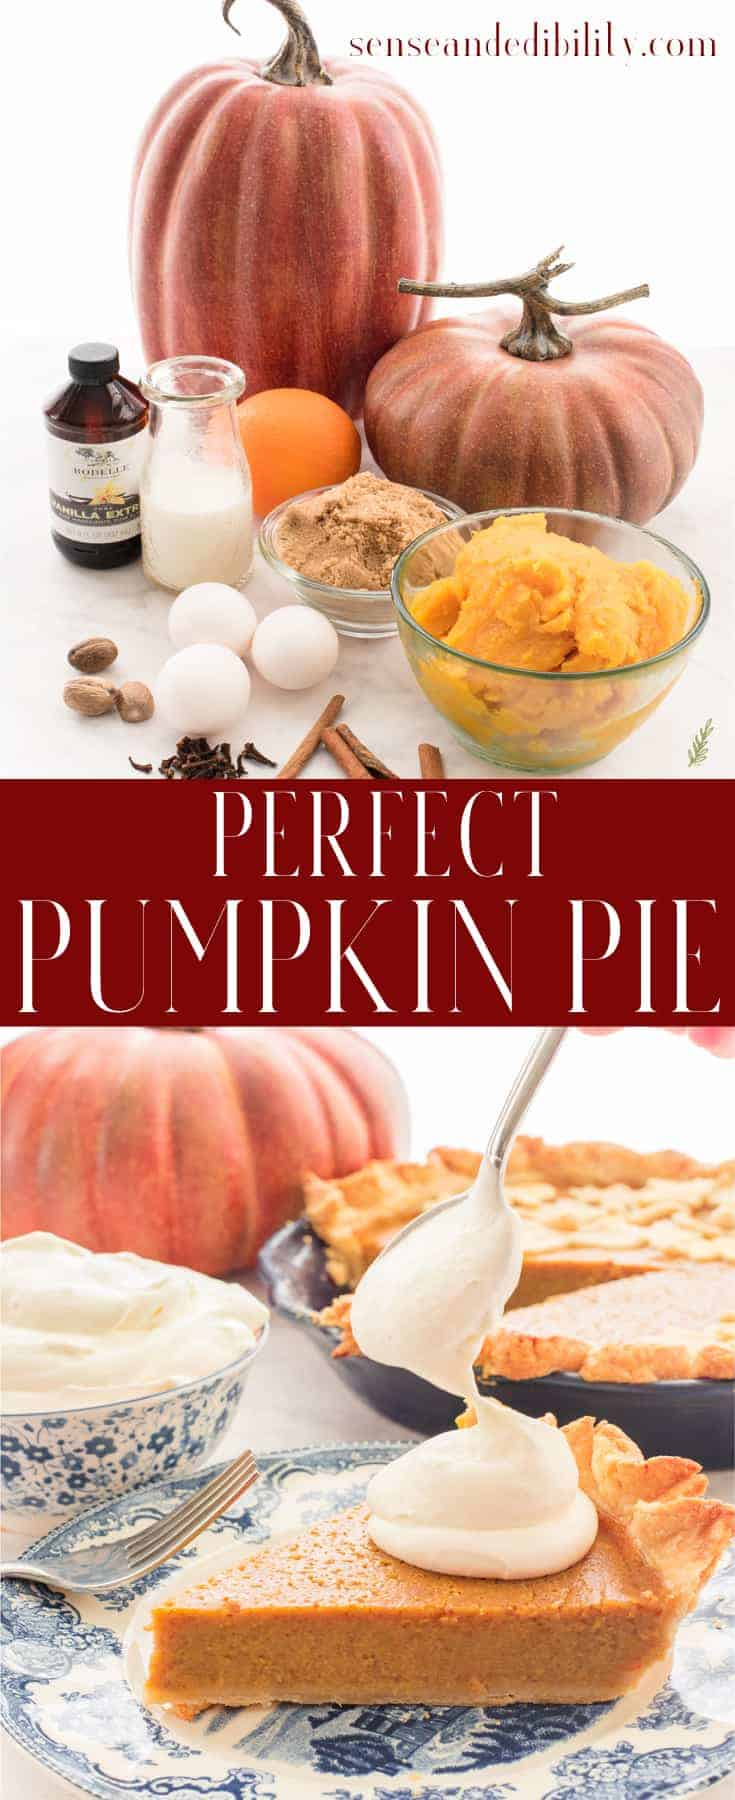 Sense & Edibility's Perfectly Easy Pumpkin Pie Pin